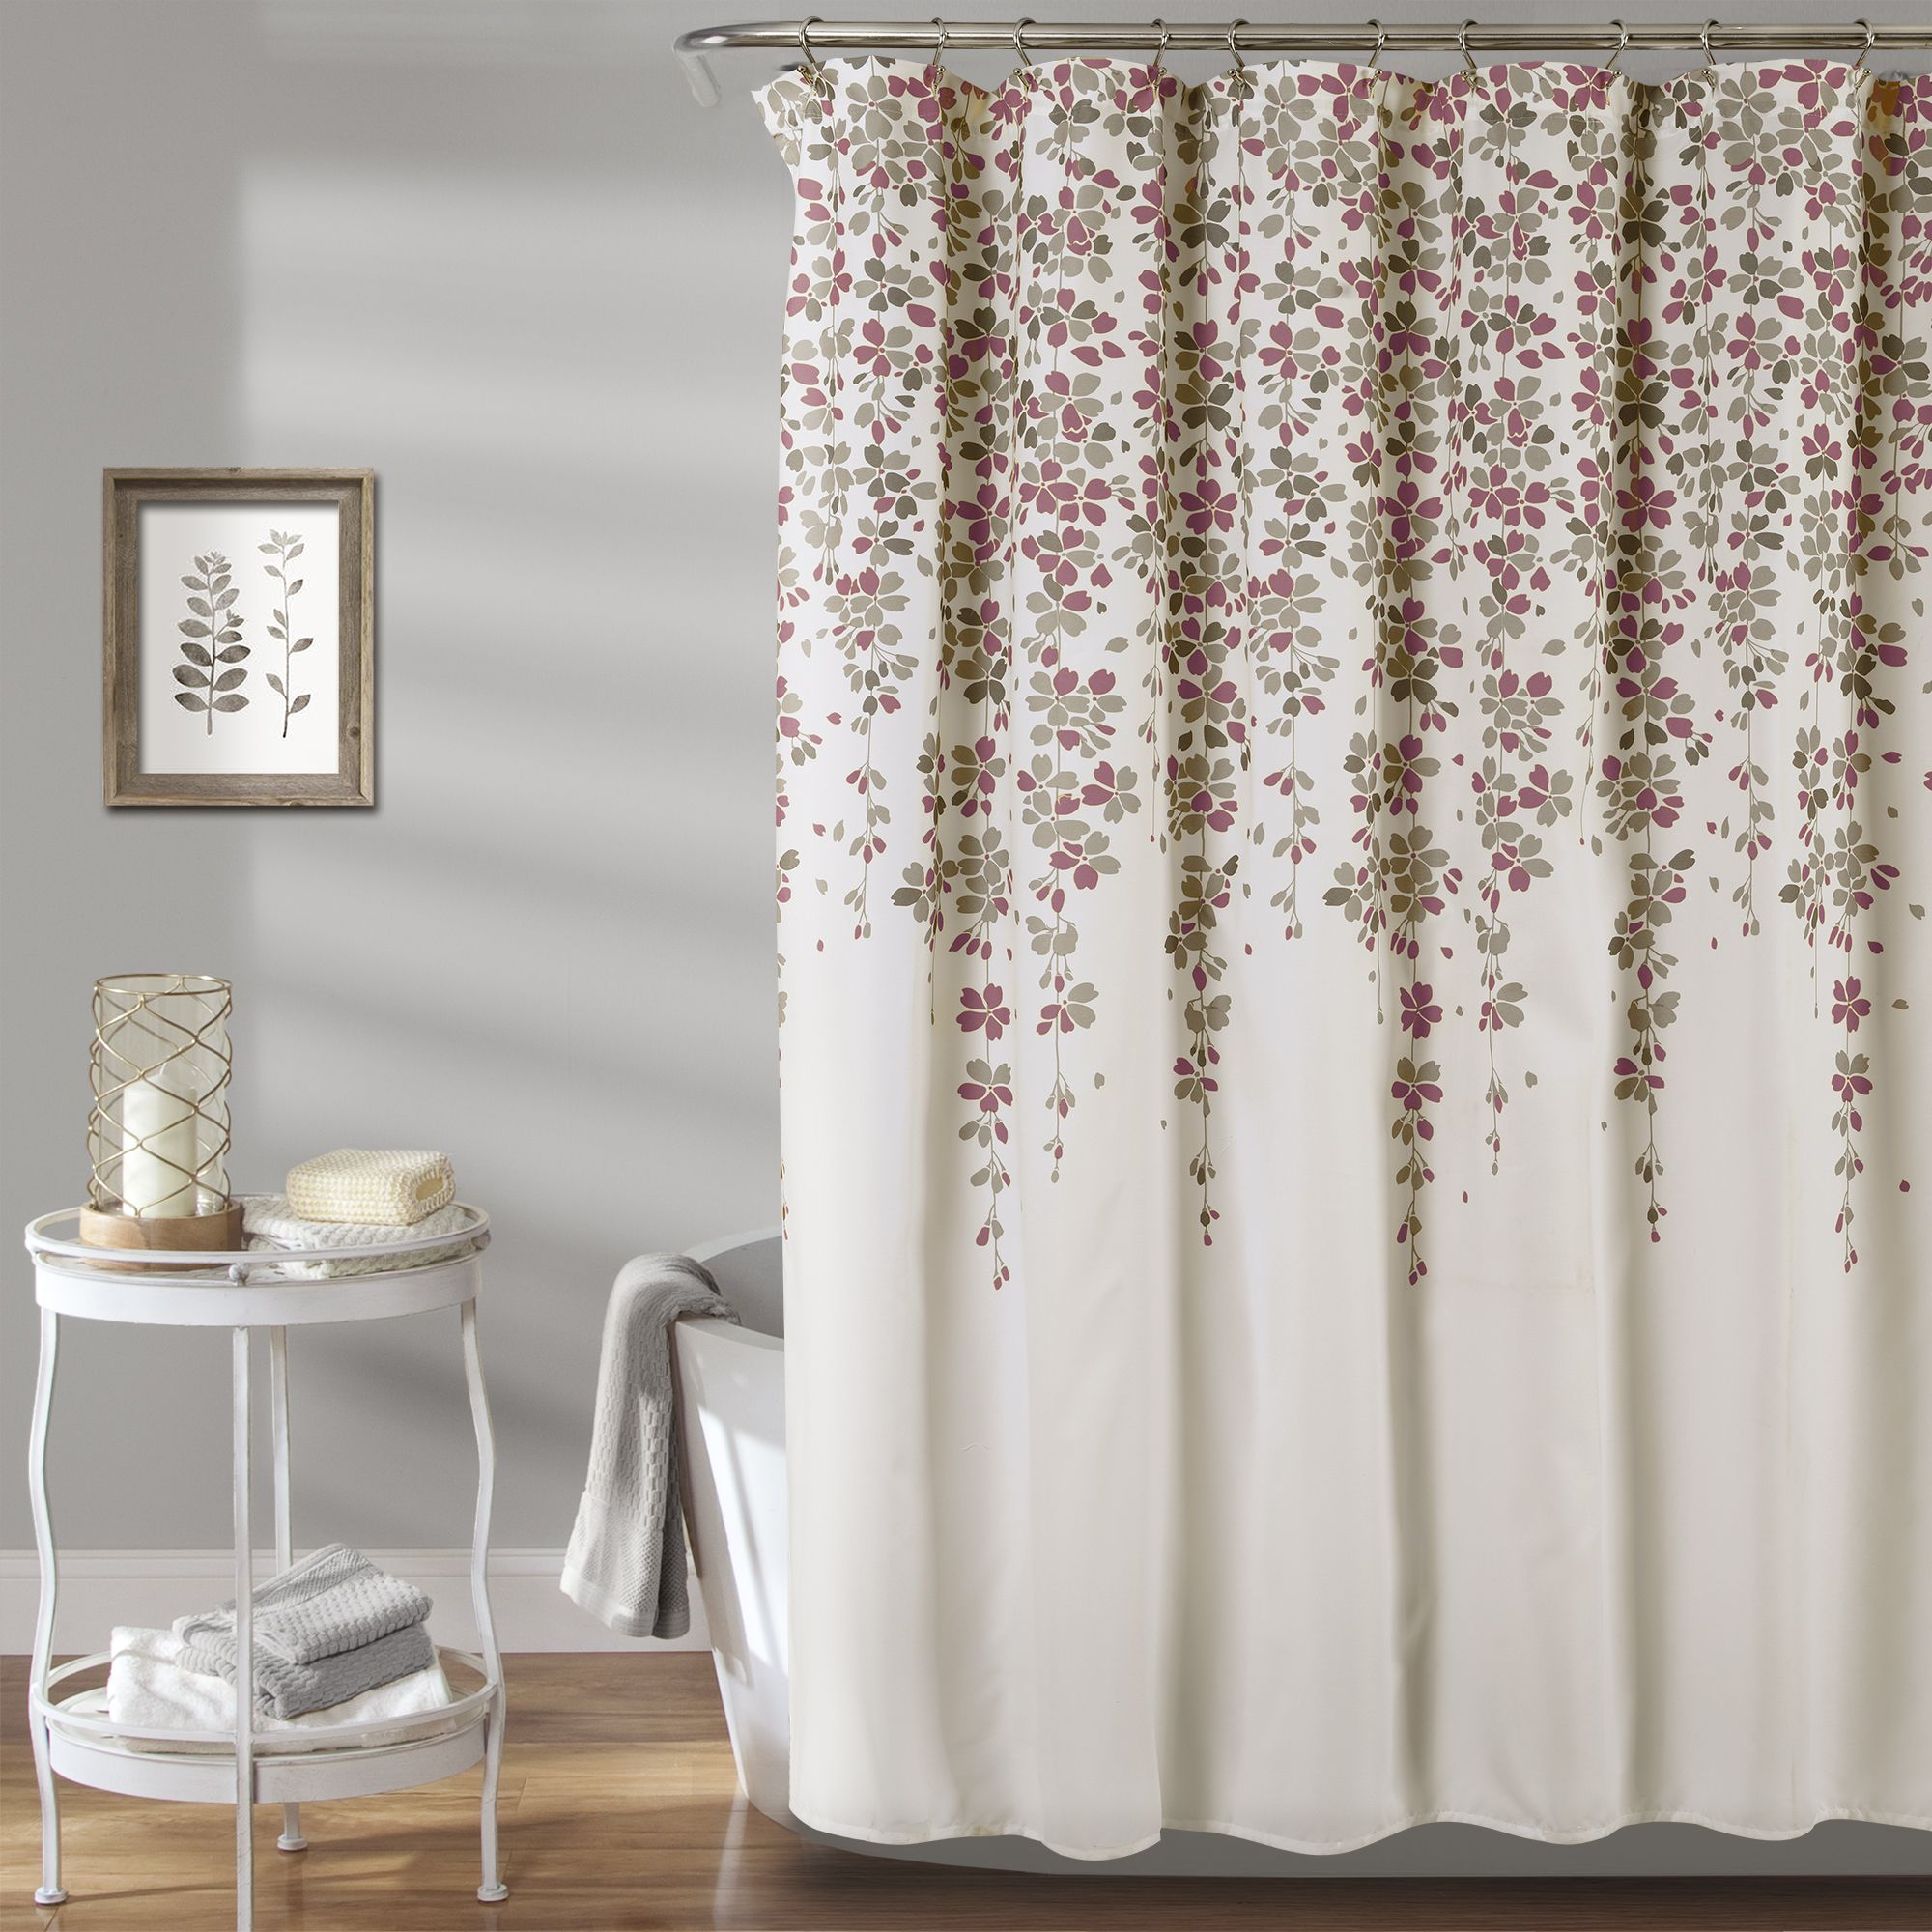 Weeping Flower Shower Curtain Flower Shower Curtain Purple